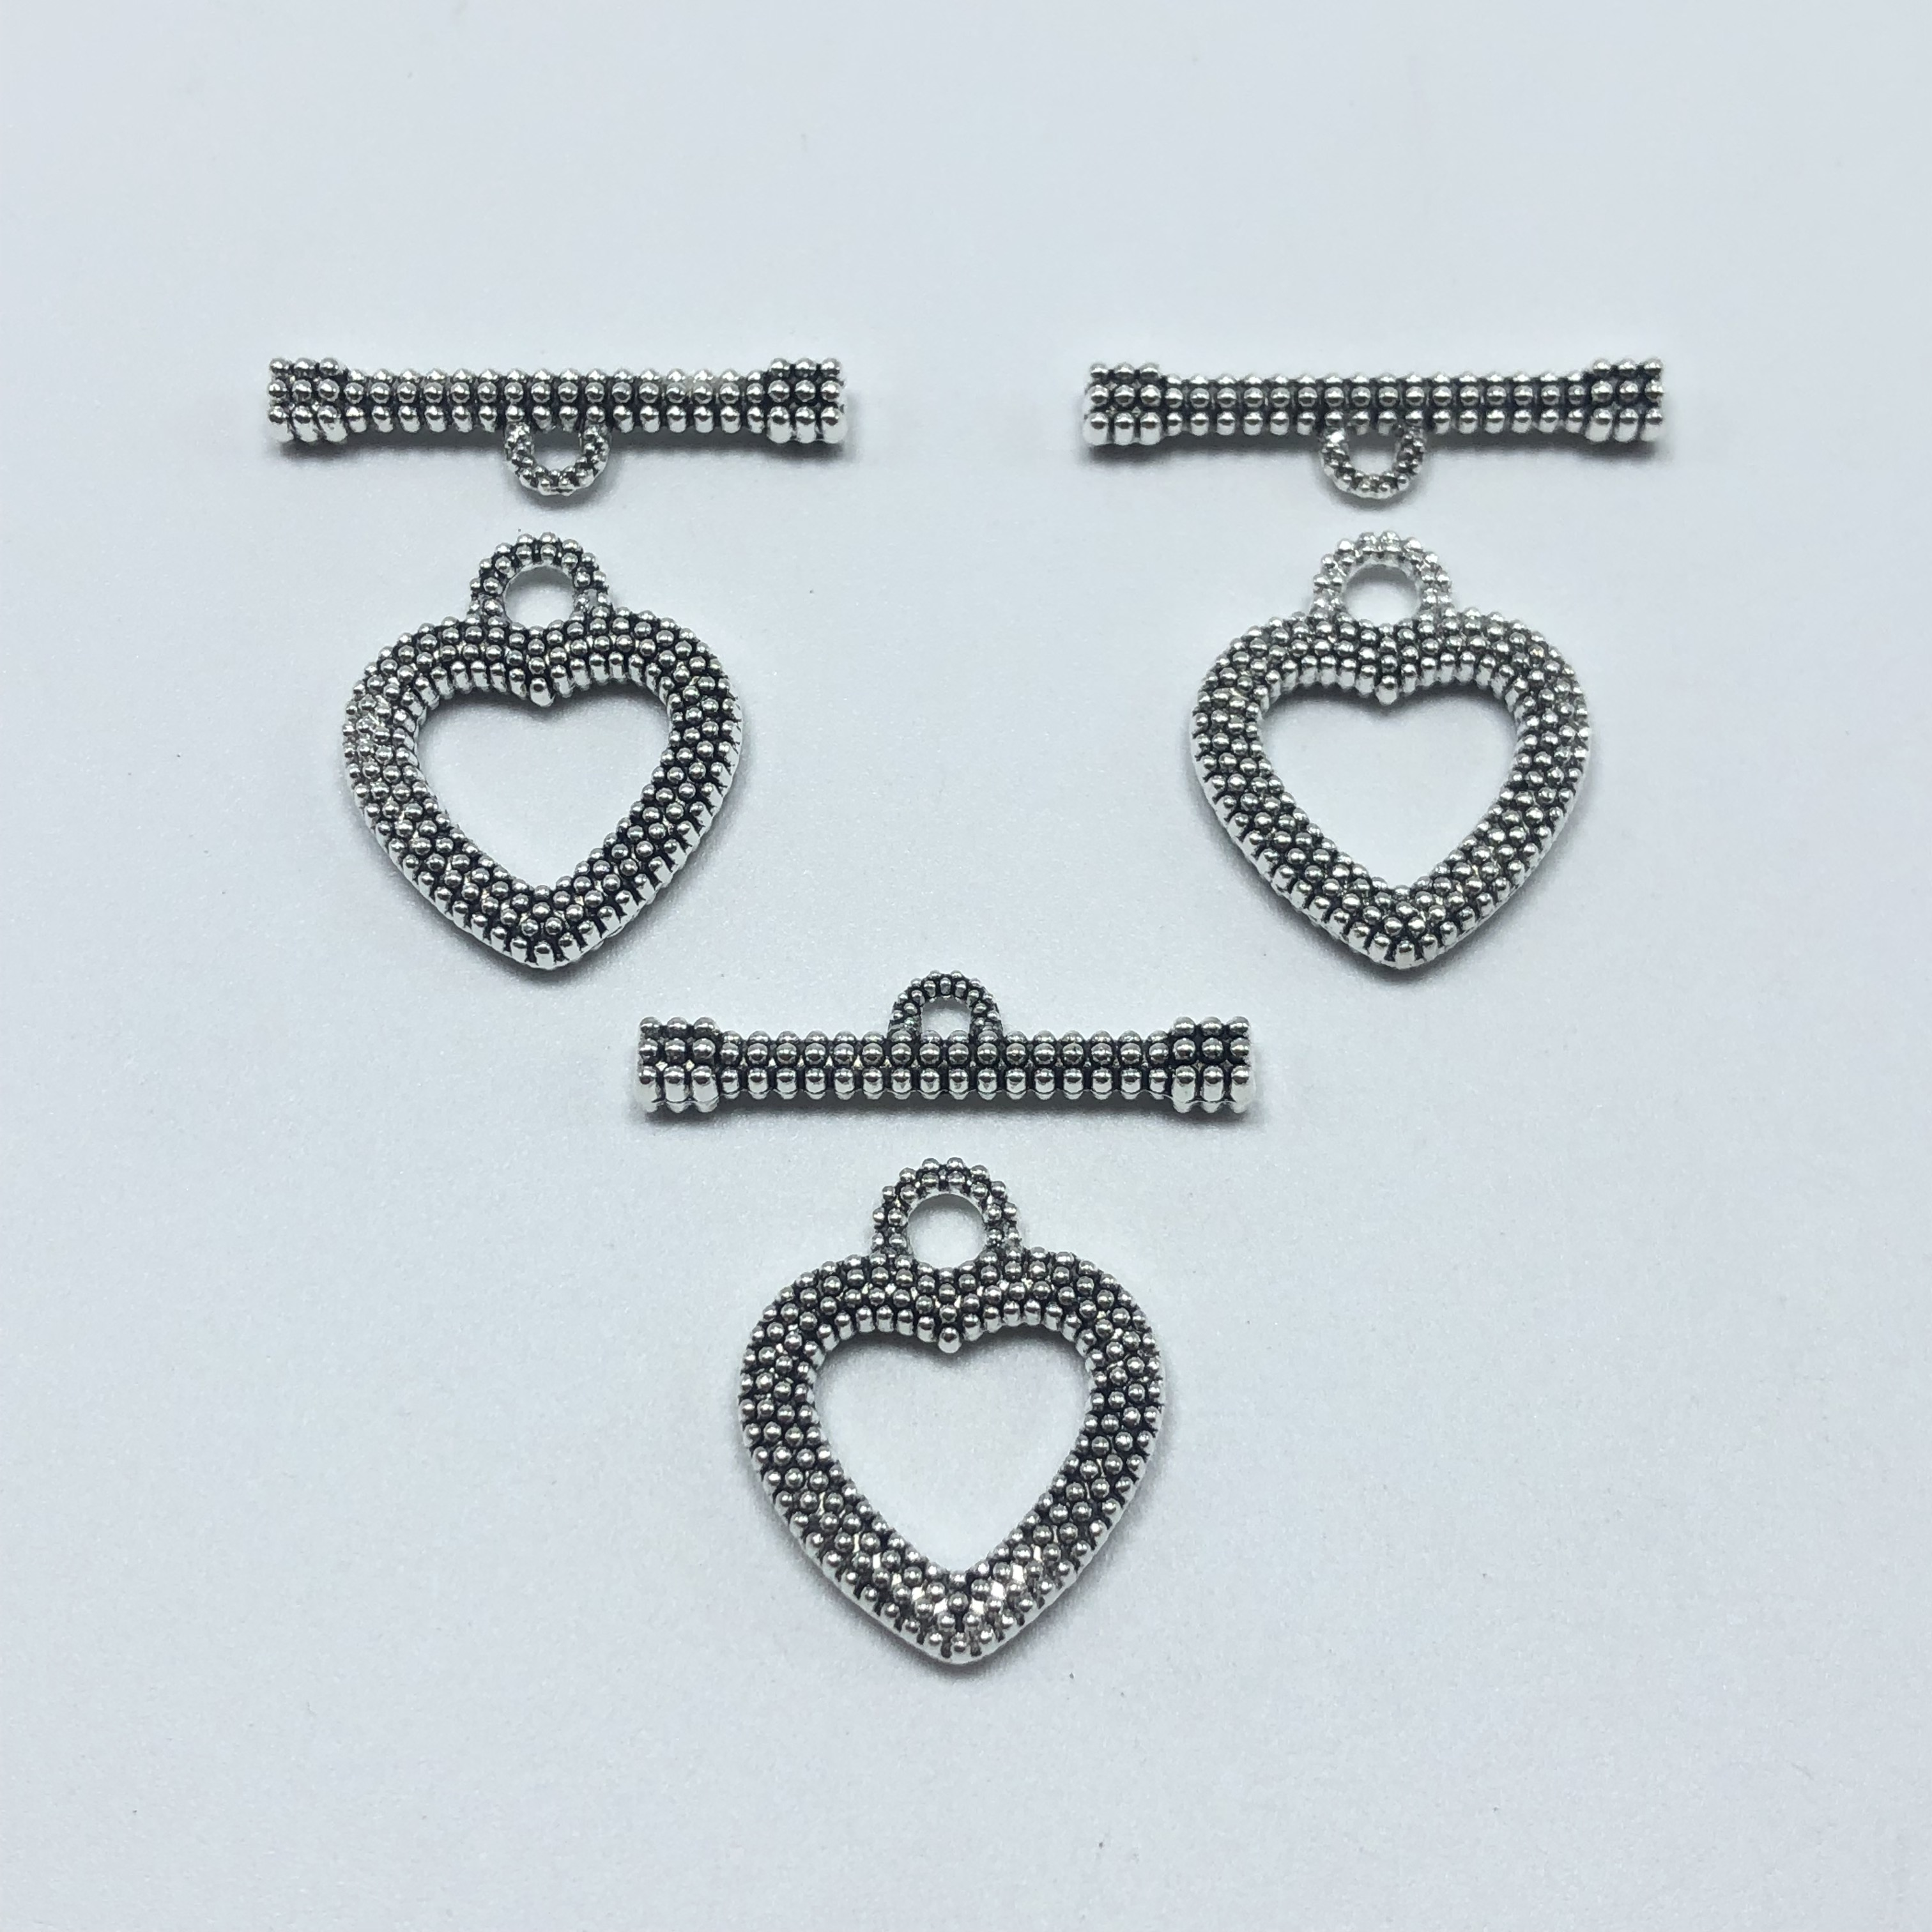 10pcs Fashion Antique silver Color OT Toggle Buckle Connectors Fit Bracelet Necklace Clasps DIY Jewelry Findings Accessories in Jewelry Findings Components from Jewelry Accessories